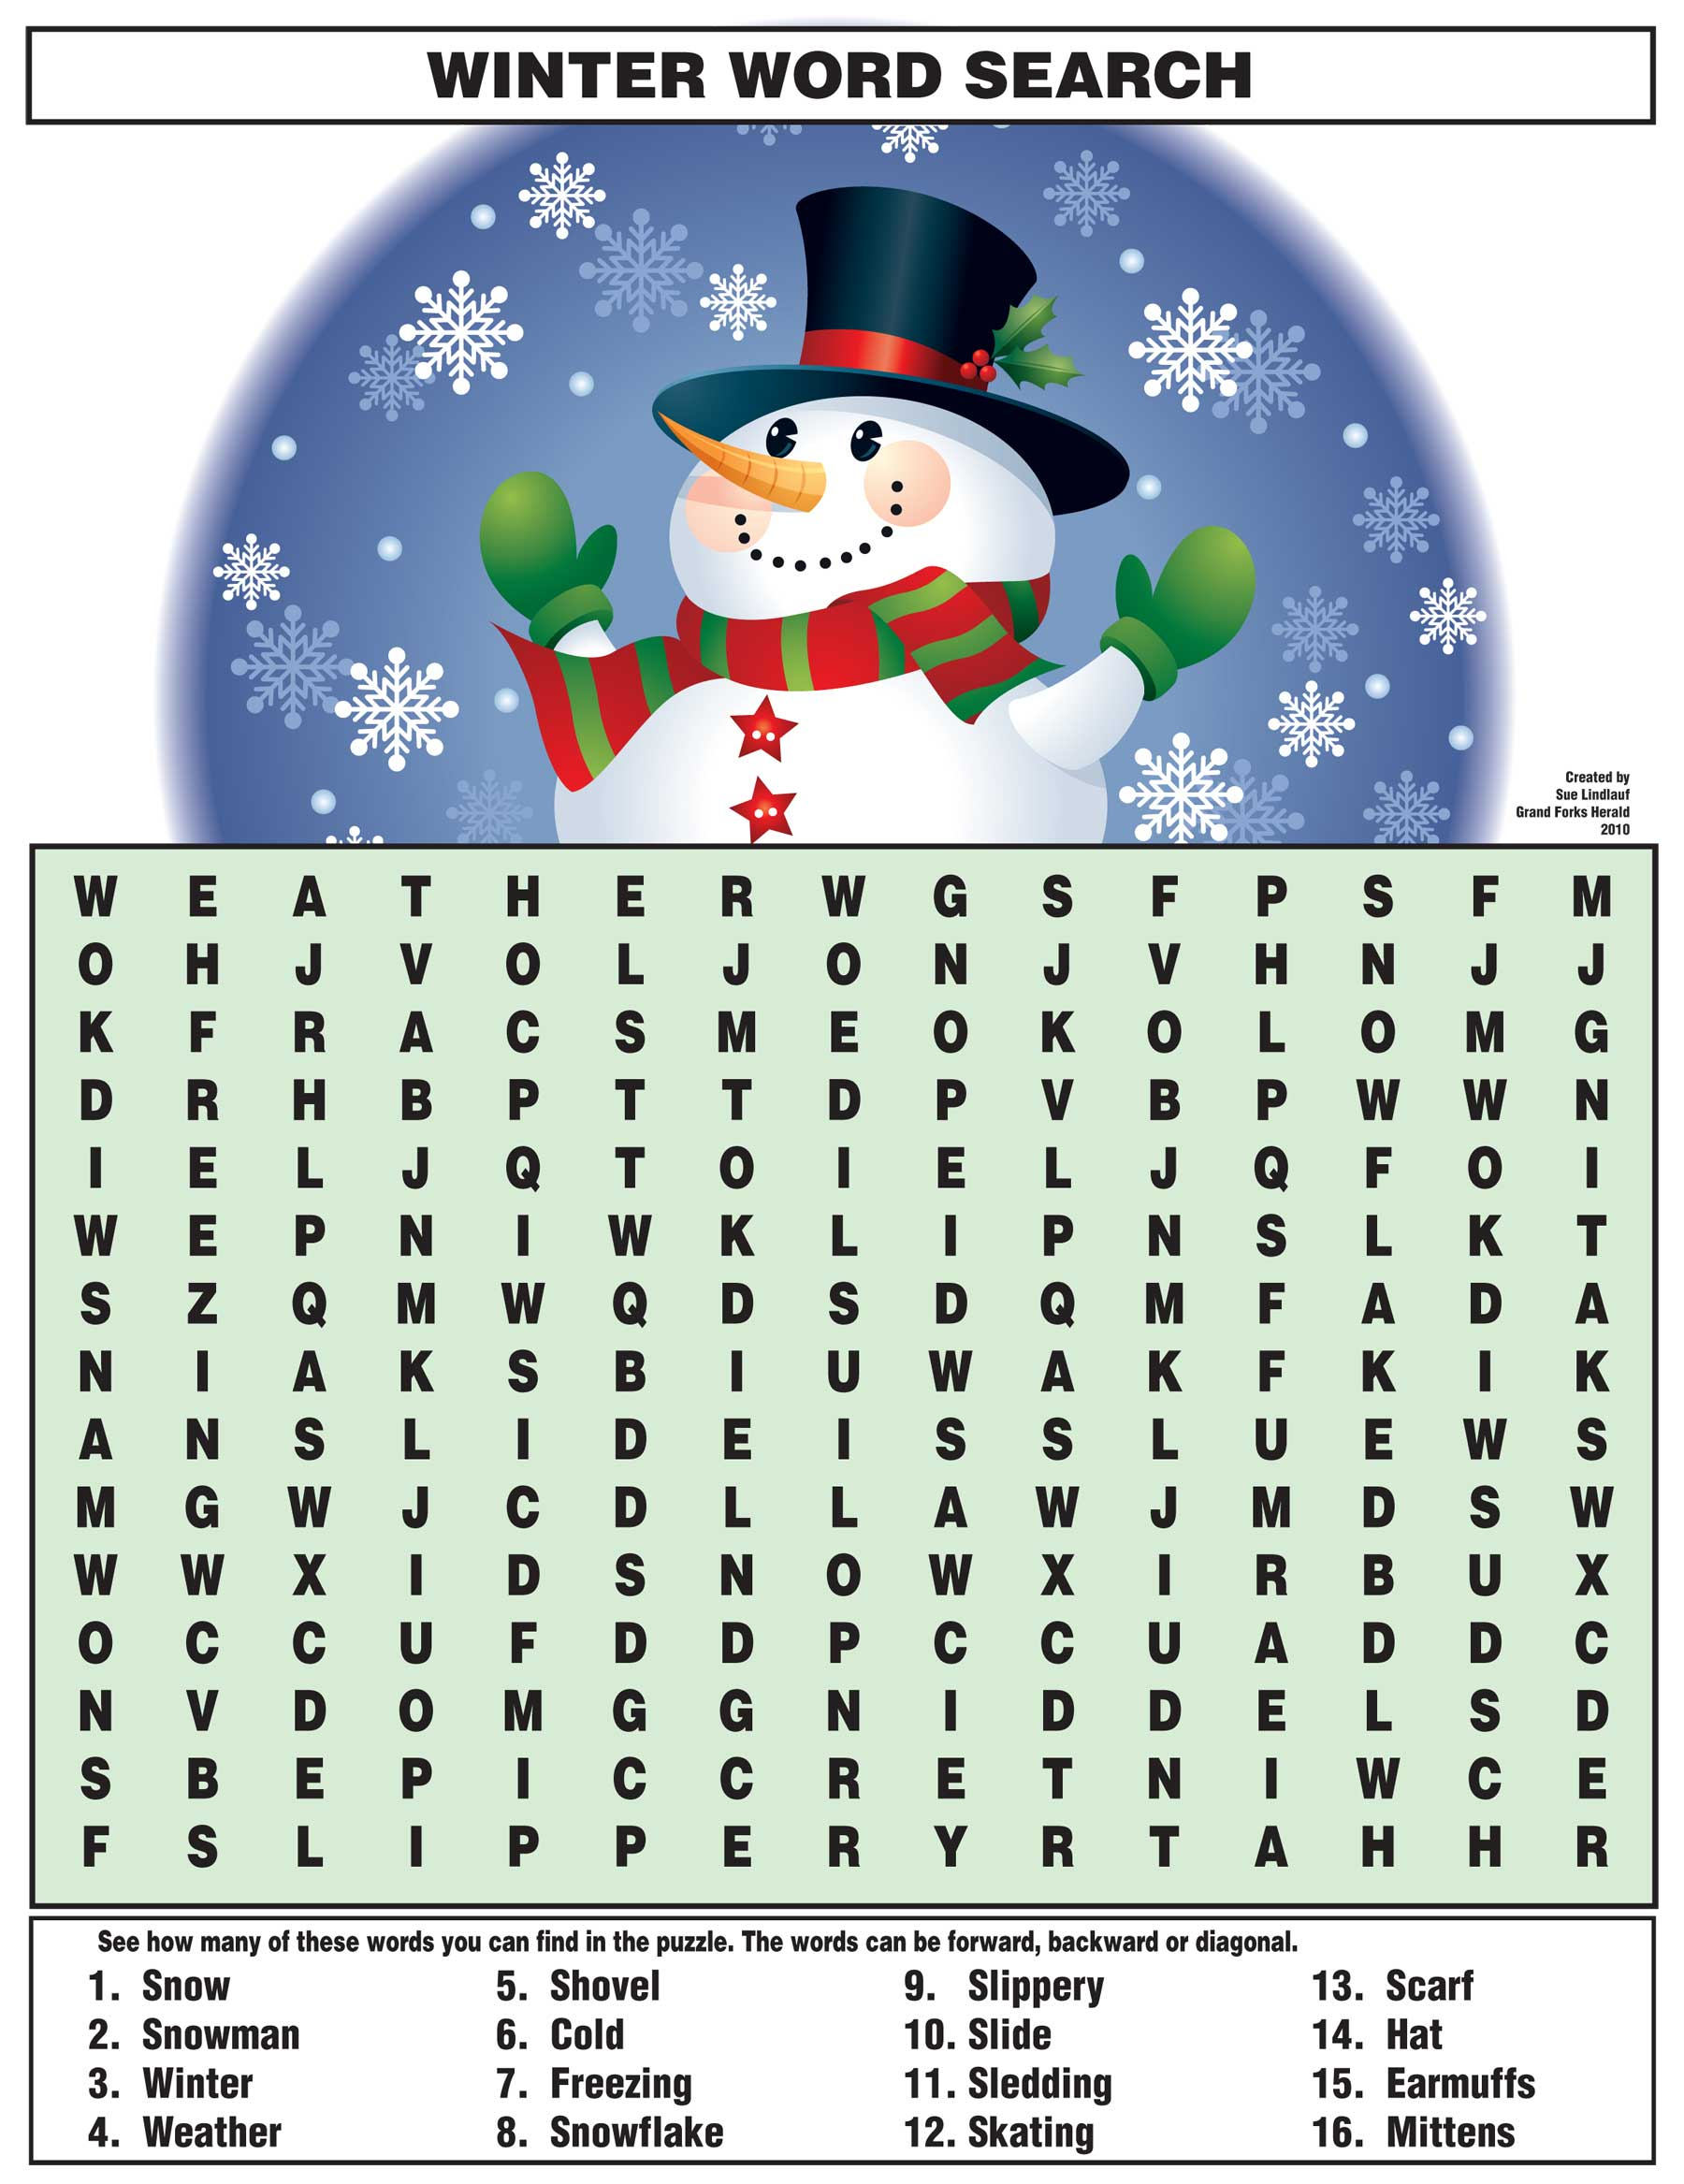 Winter Word Search | Kids Activities - Printable Snowman Puzzle